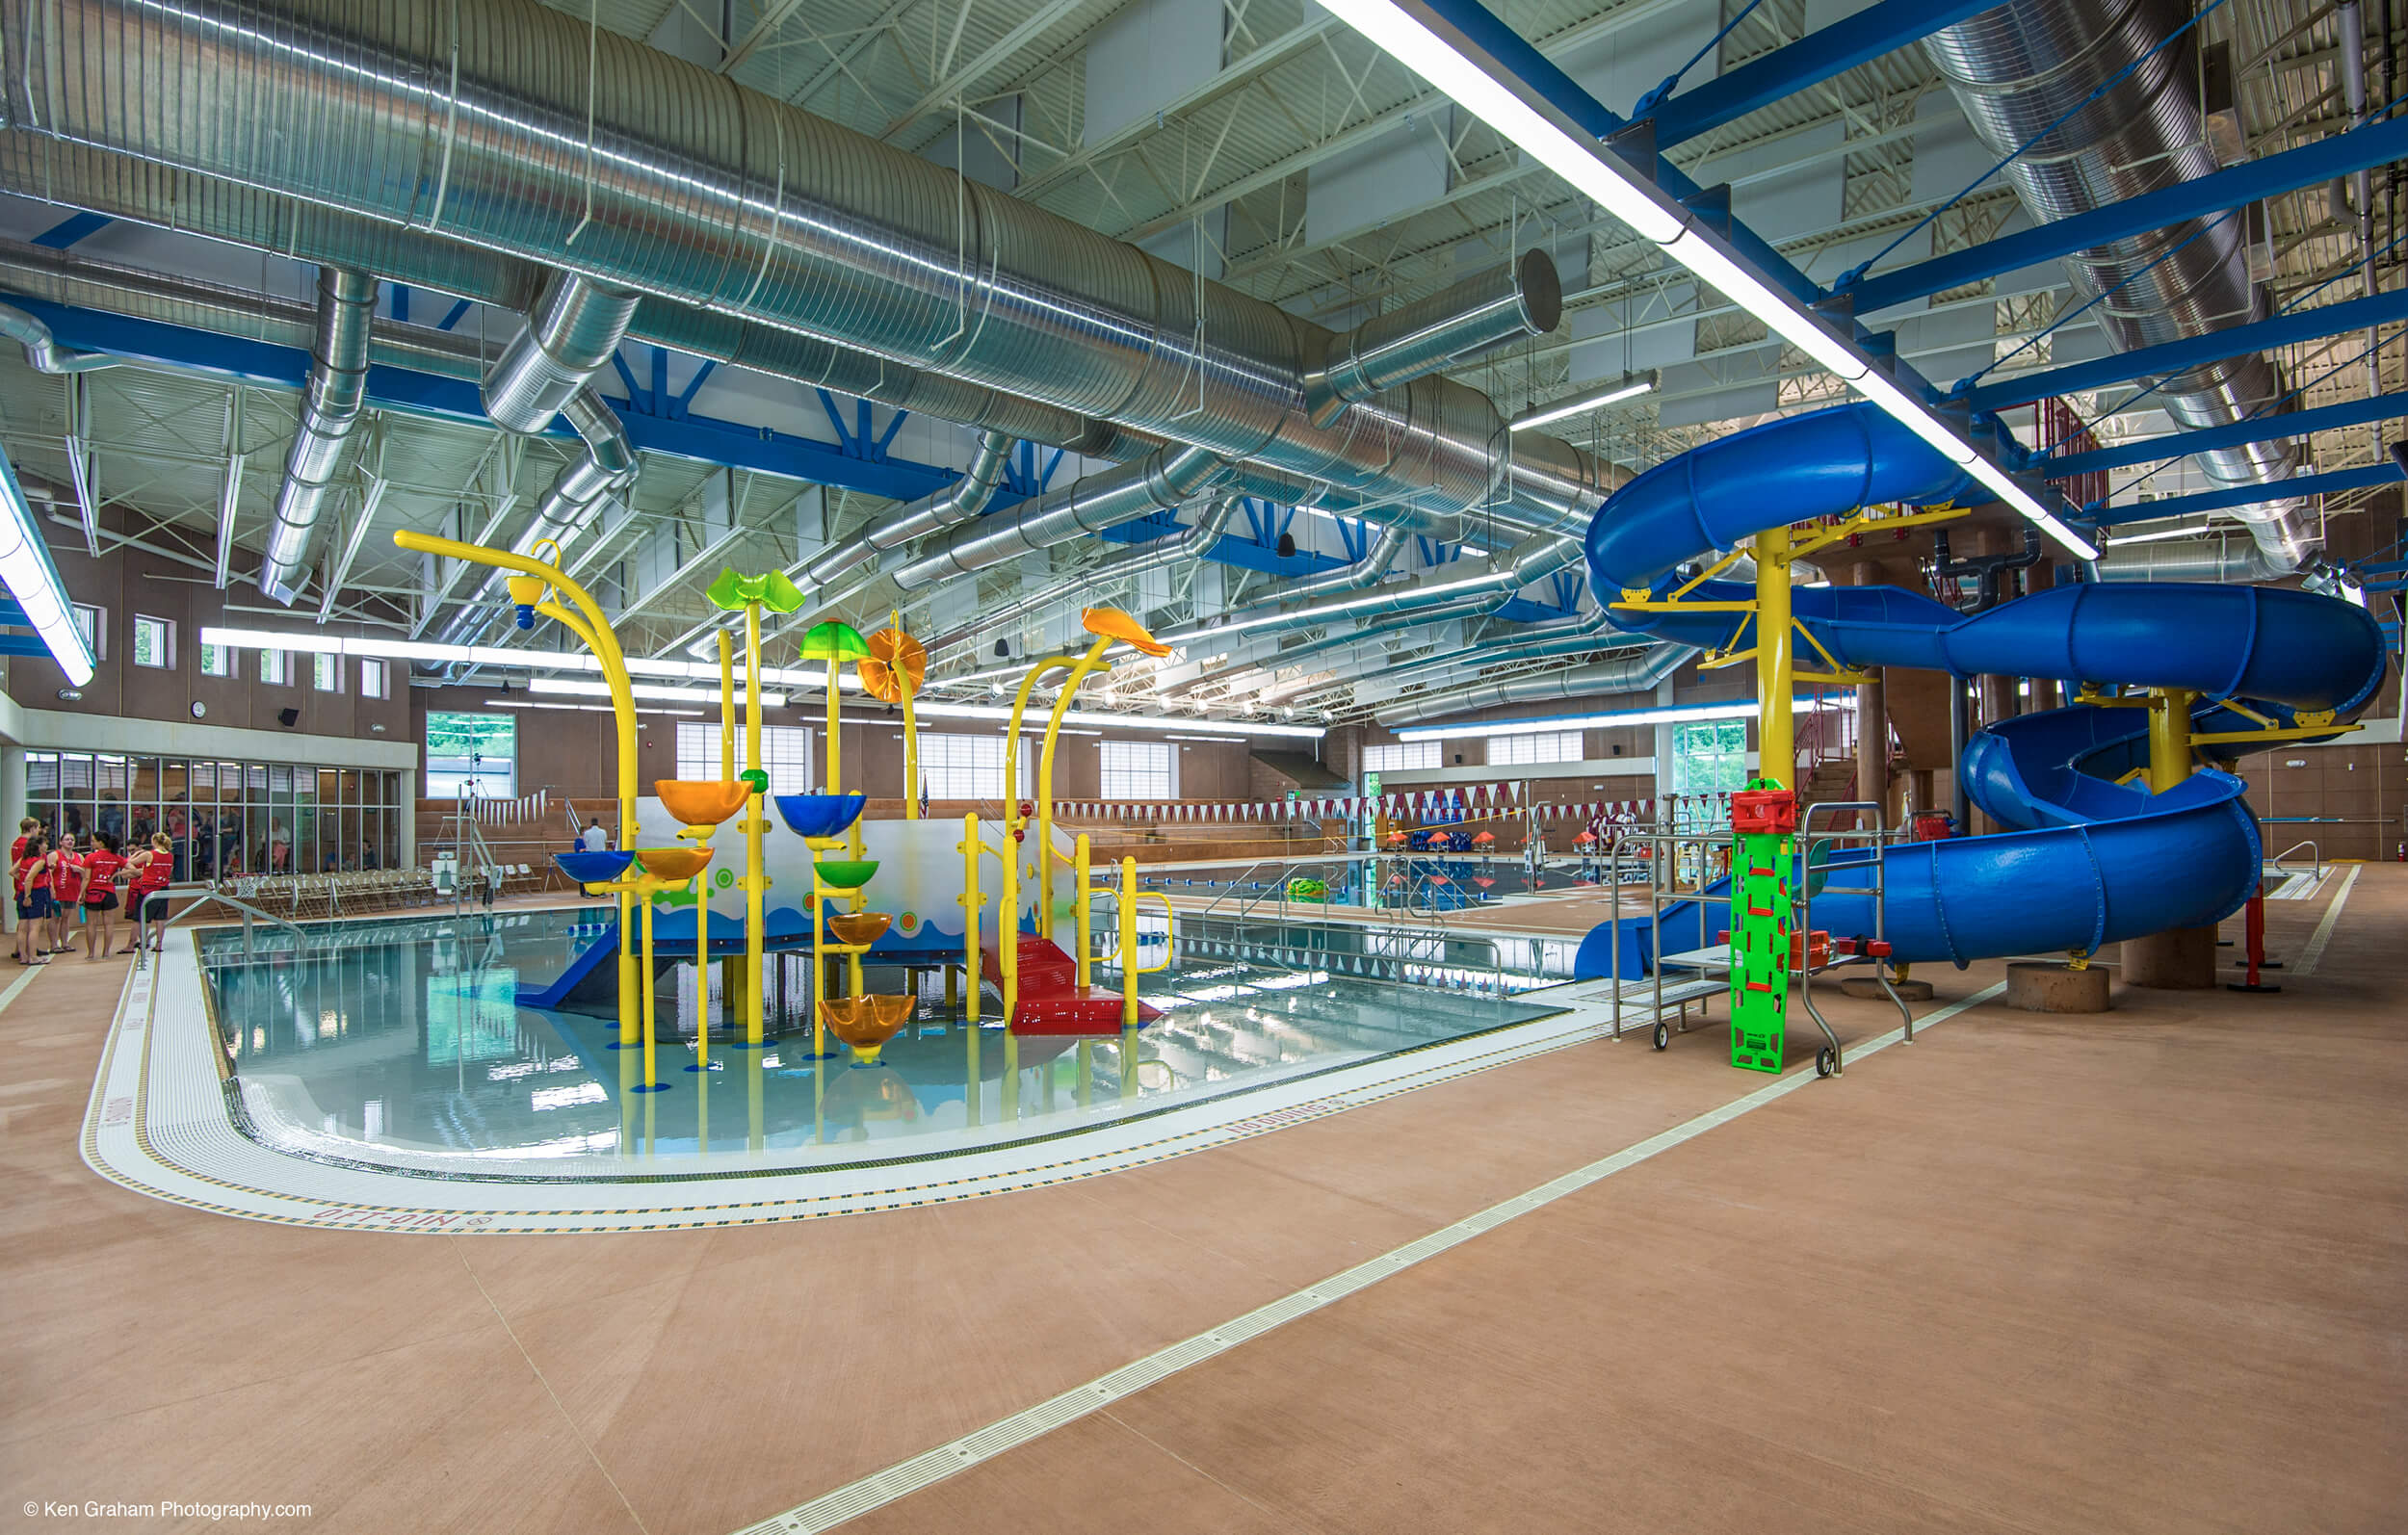 Expand Ketchikan Aquatic Center Water SLides